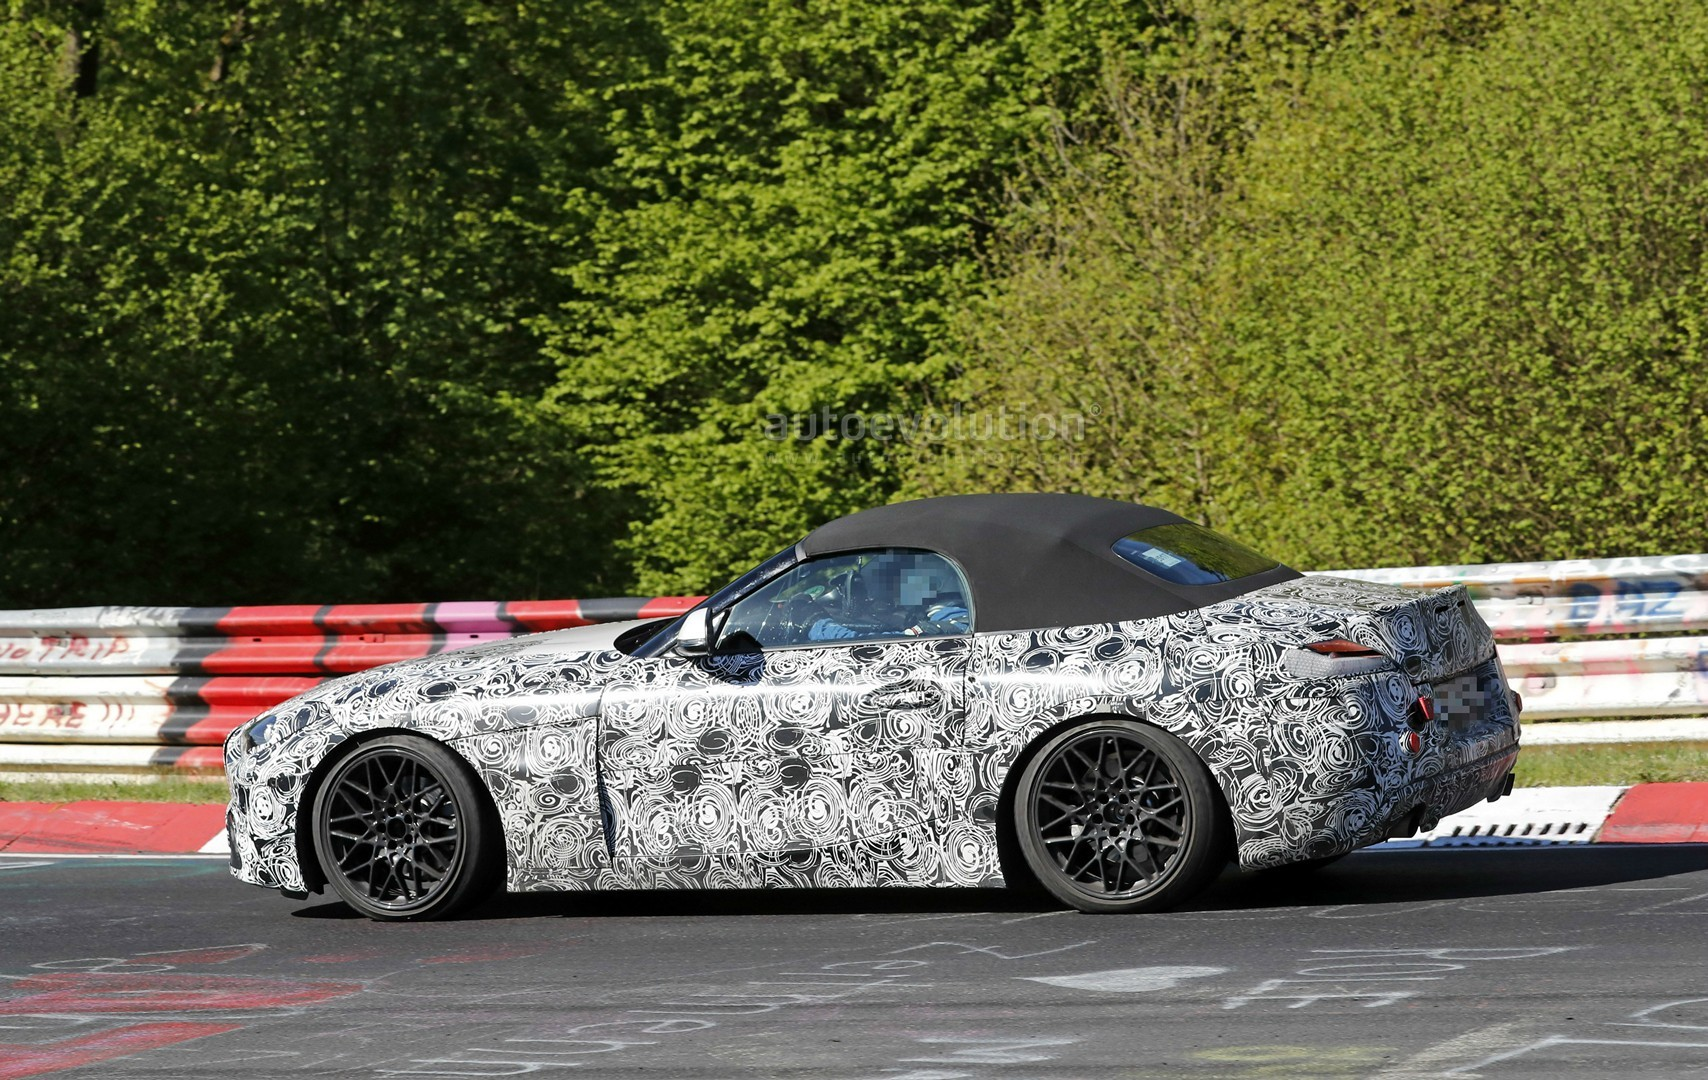 2018 Bmw Z4 S20i Interior Spyshots Reveal Specs And 6